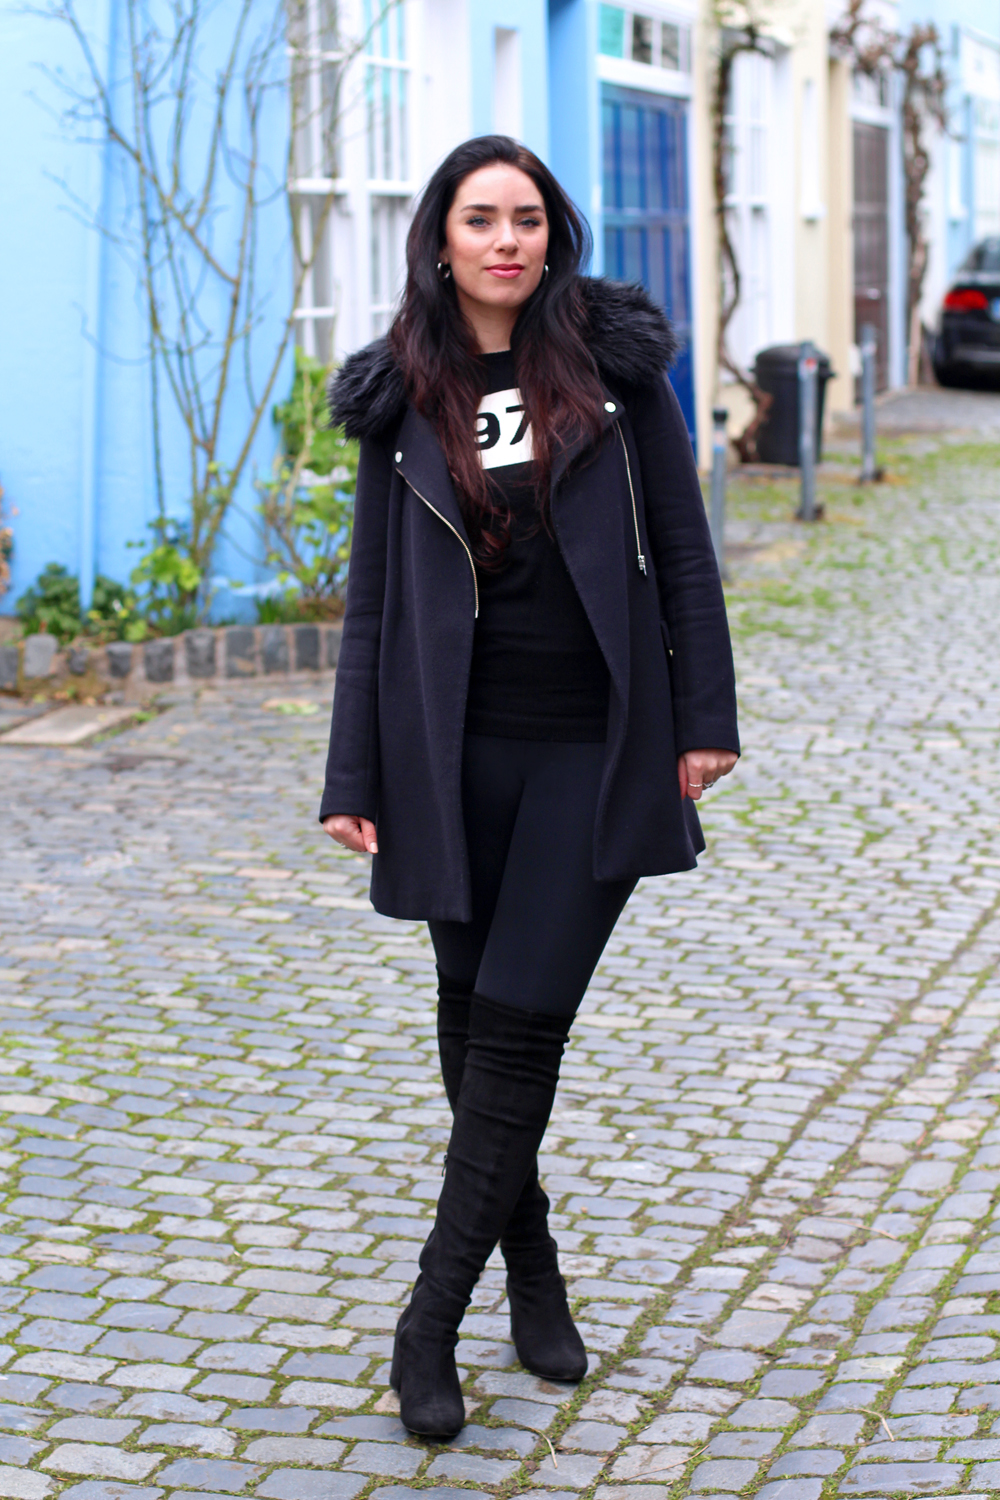 All black outfit, Emma Louise Layla - London style blogger